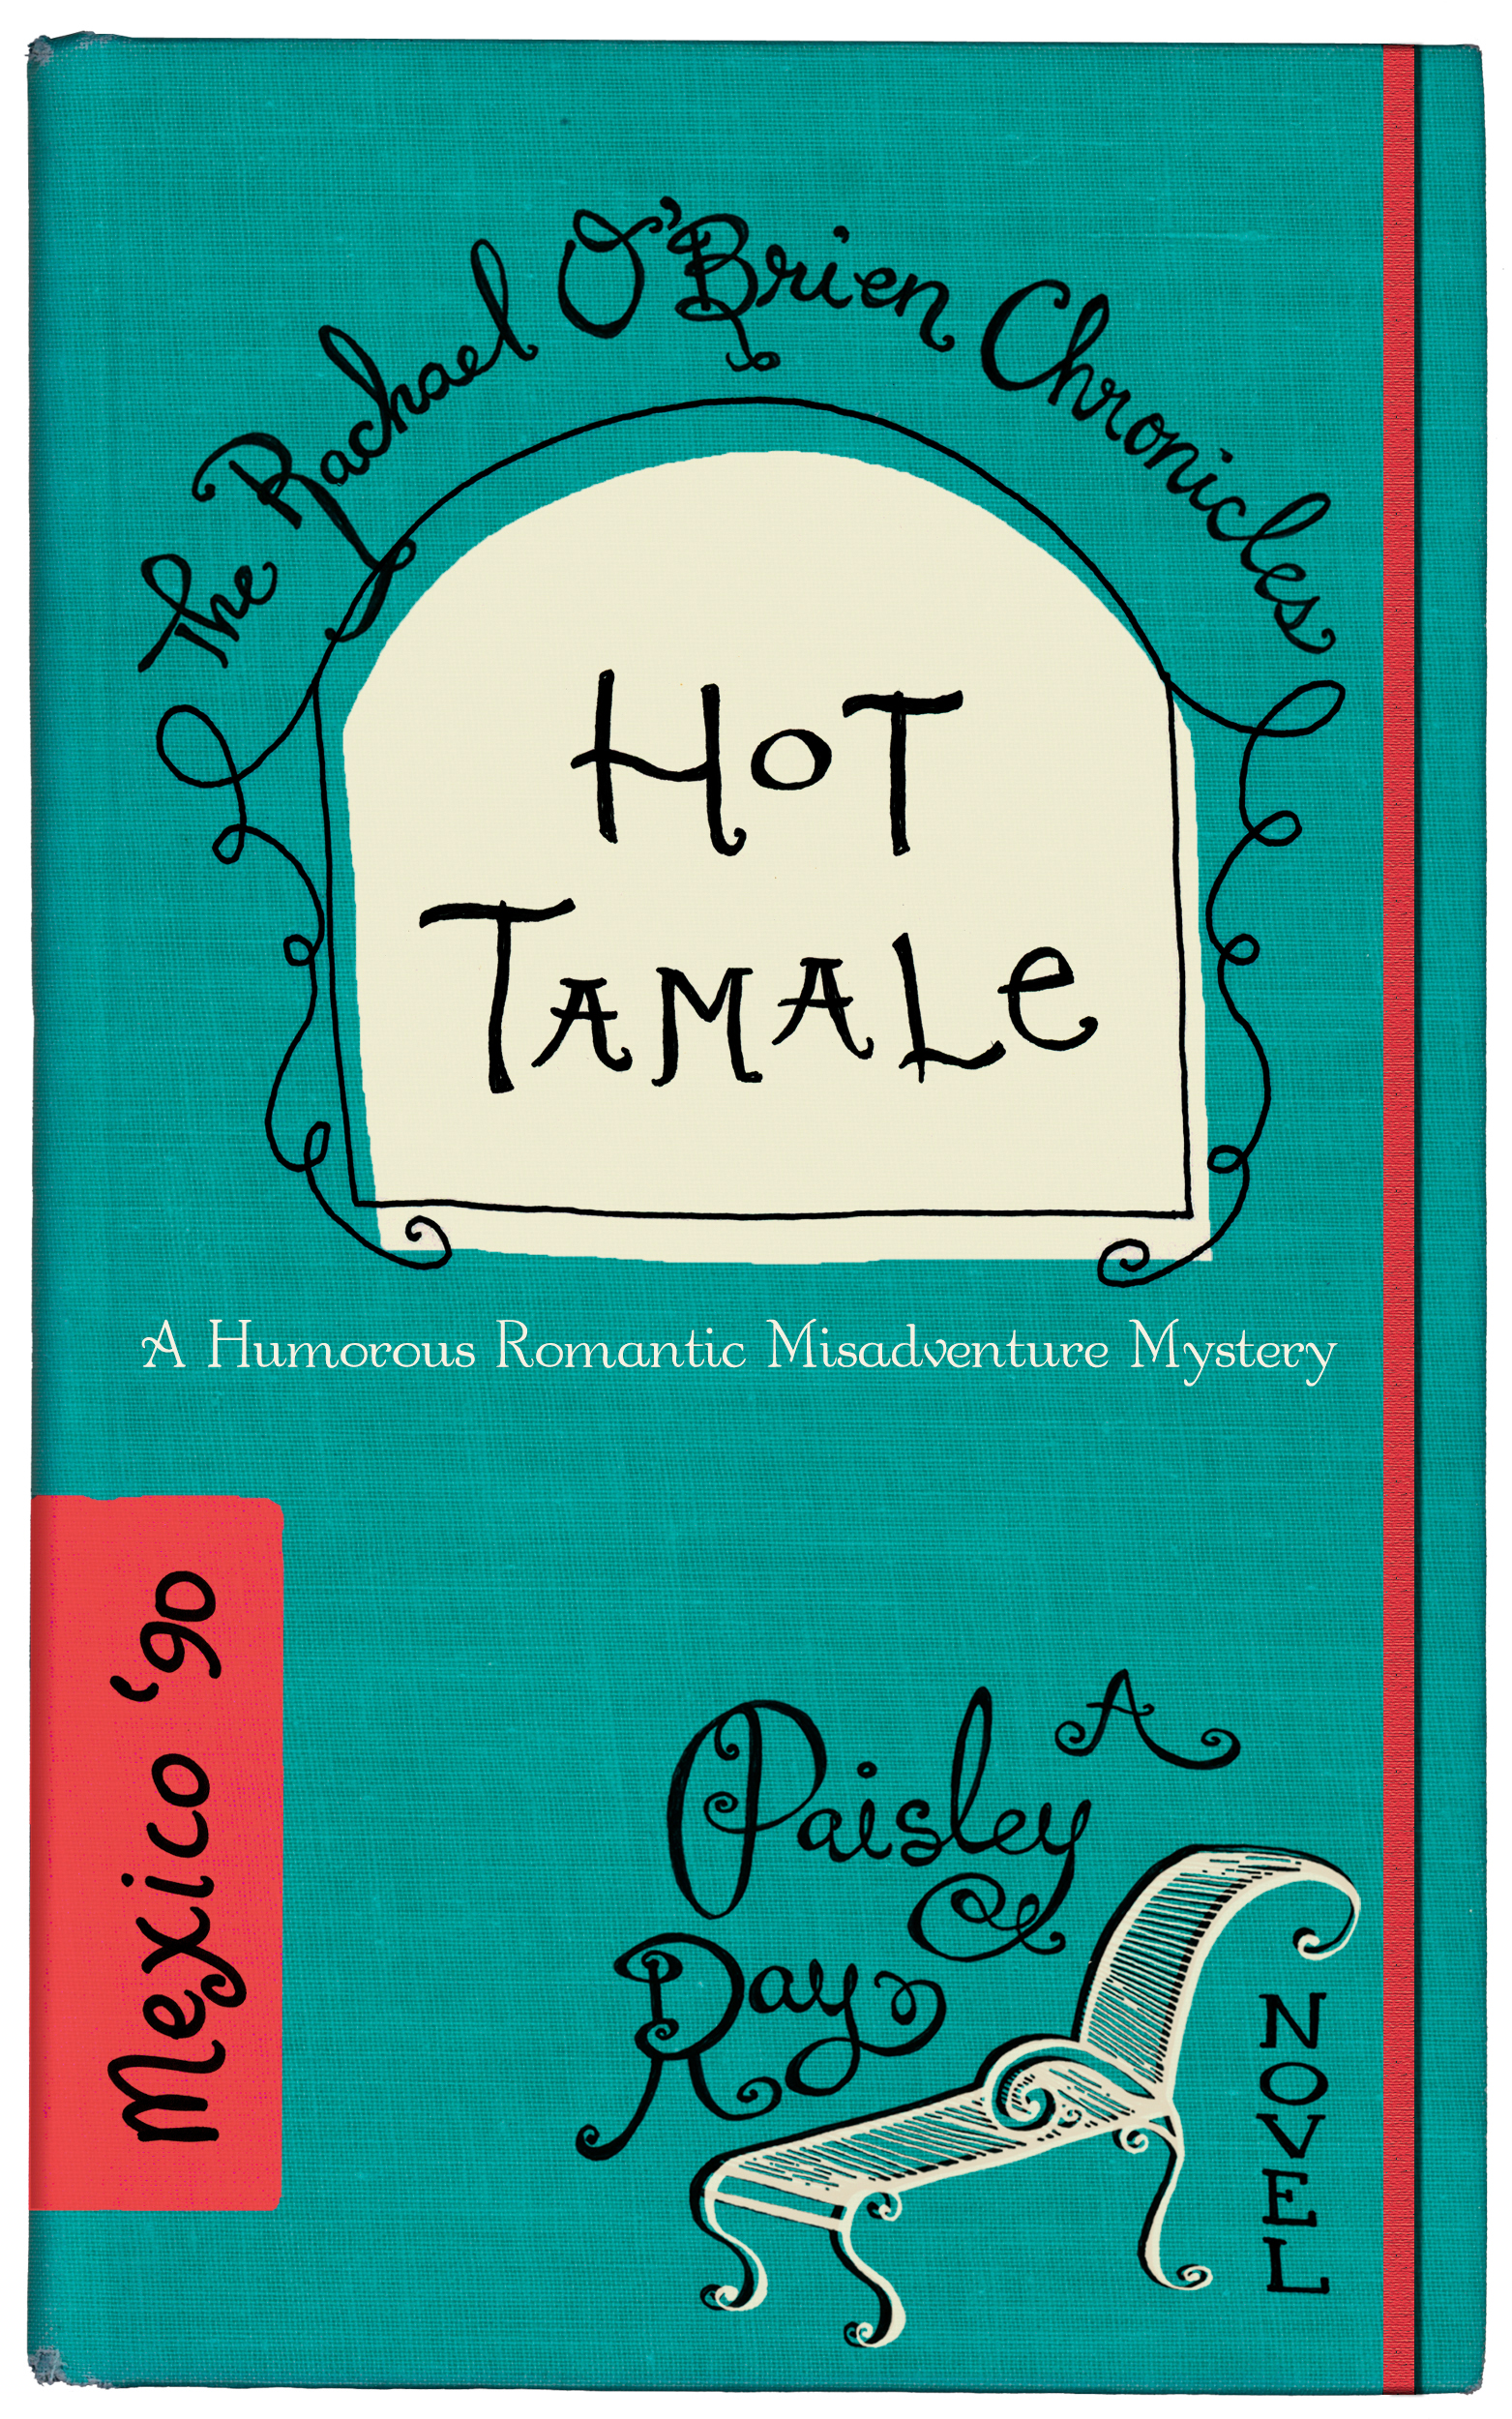 Hot Tamale mystery book